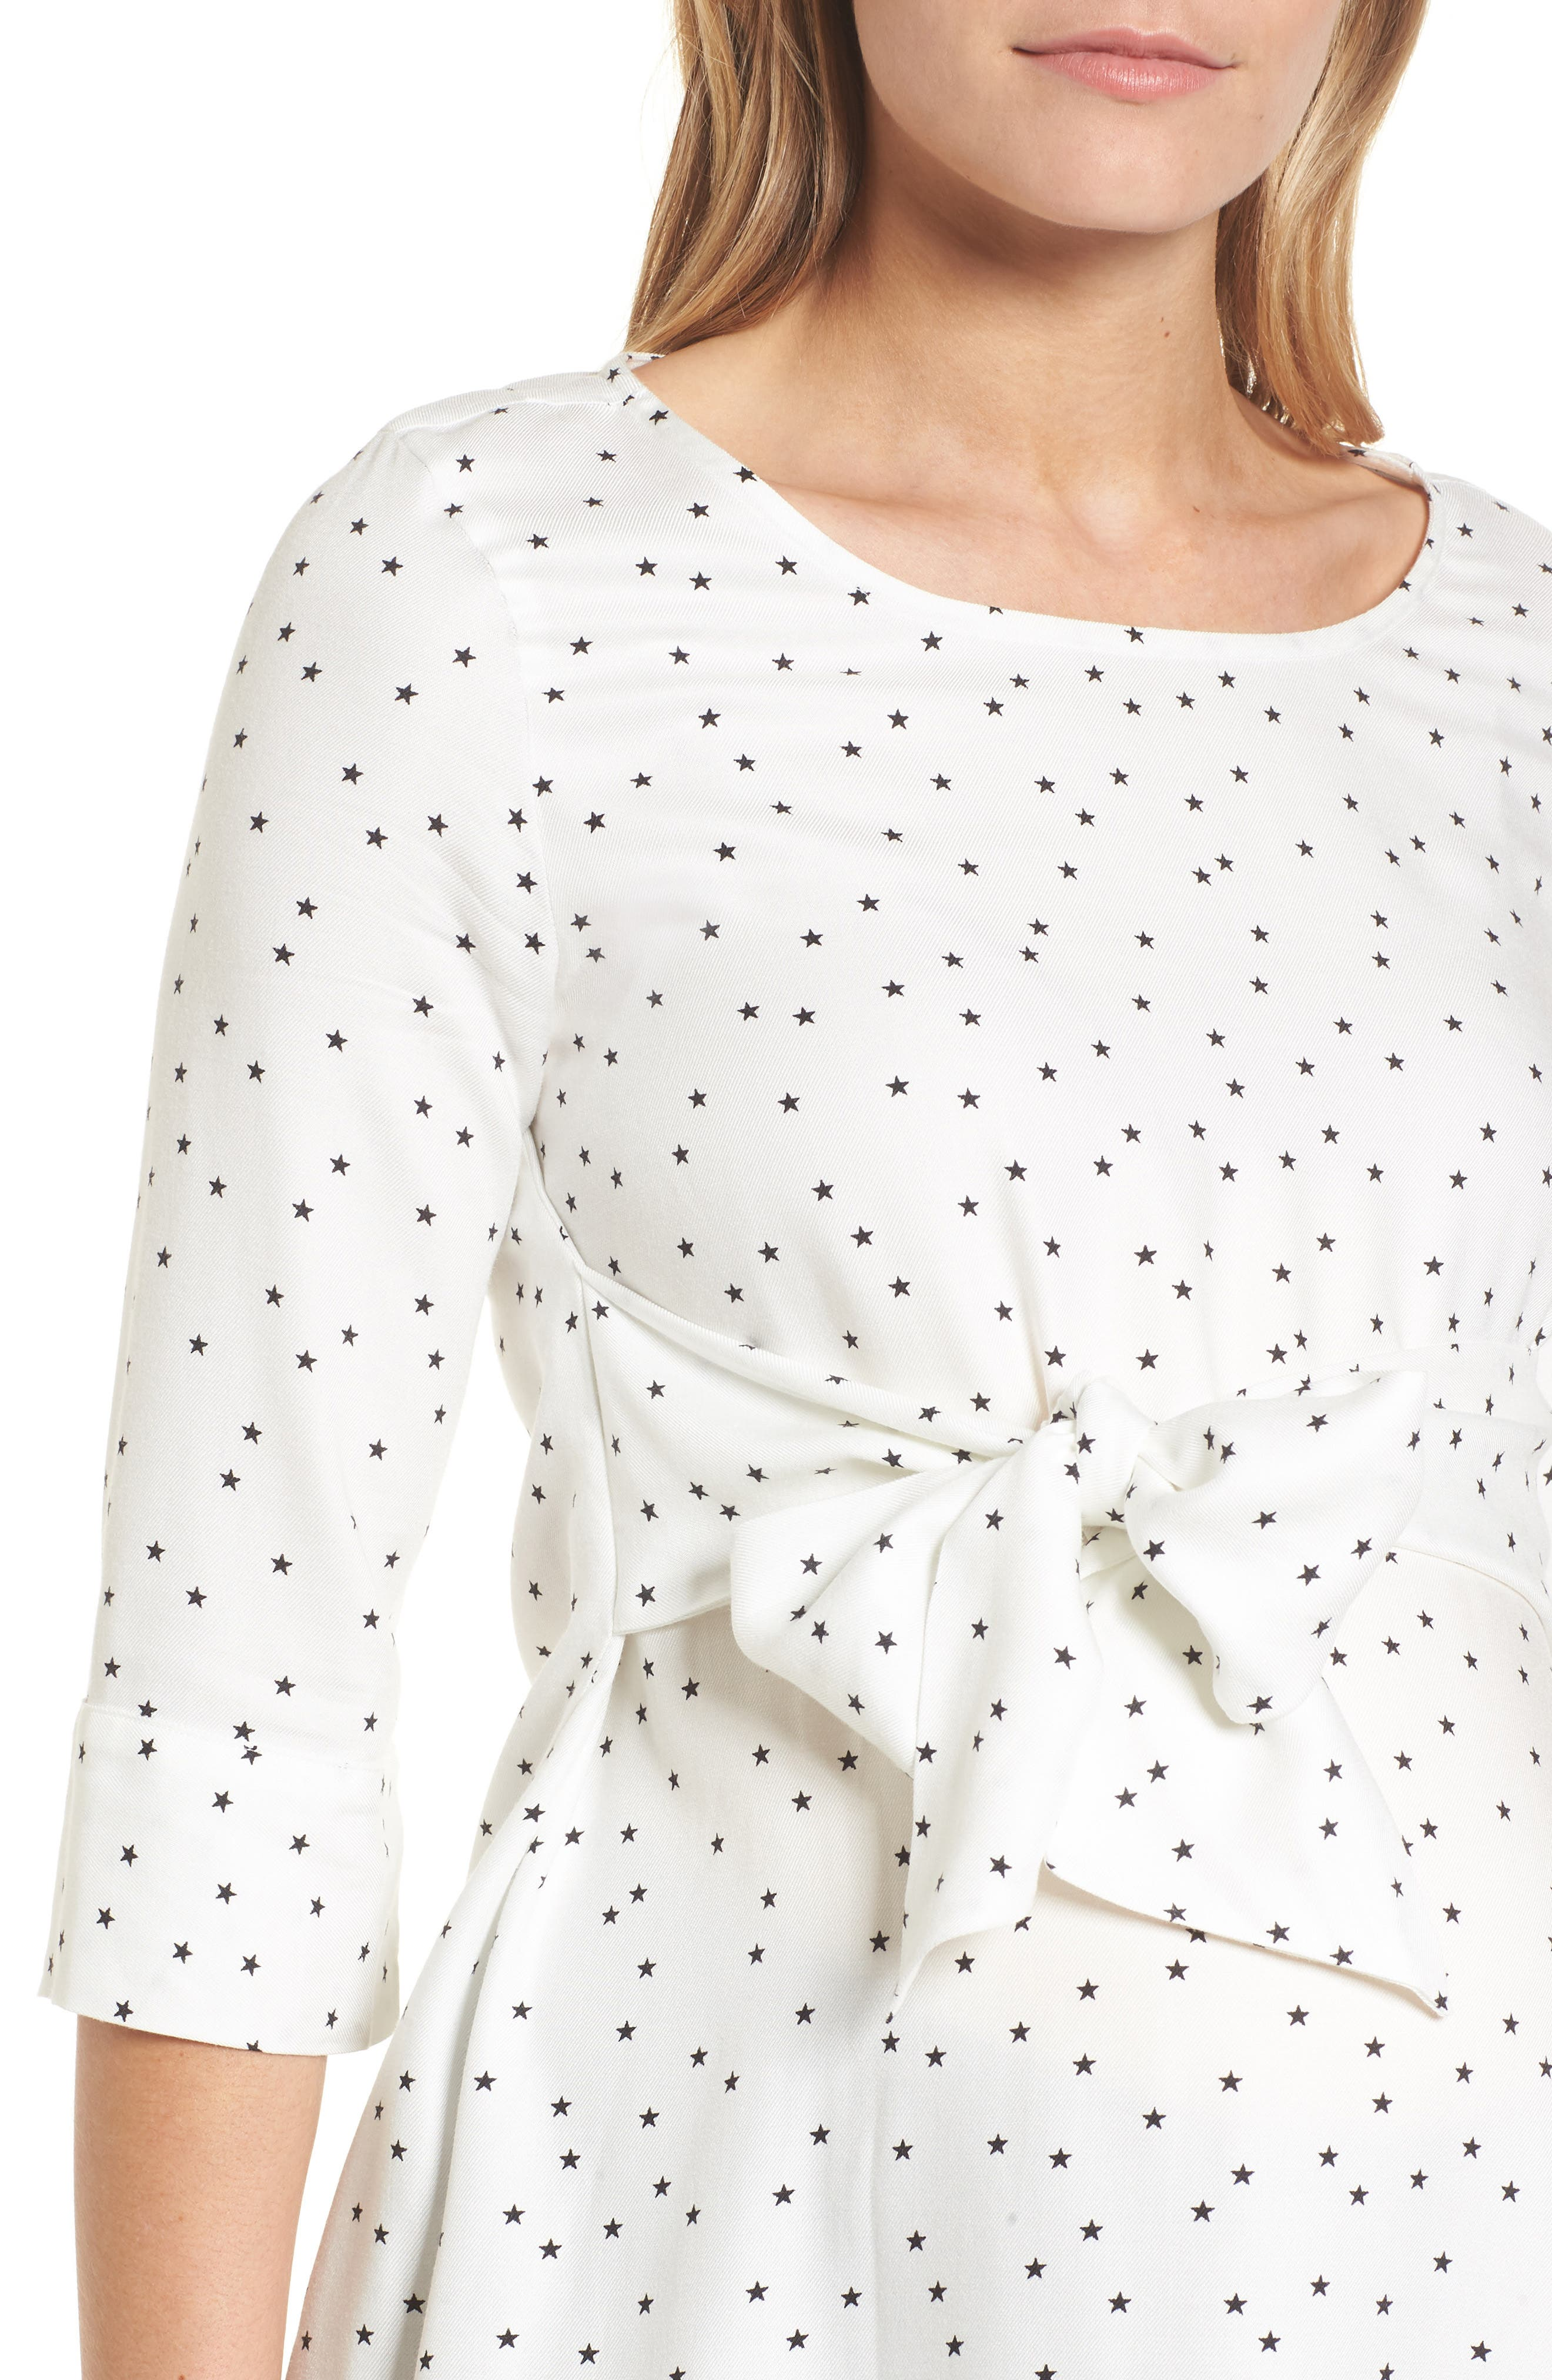 ISABELLA OLIVER,                             Selina Tie Front Maternity Top,                             Alternate thumbnail 4, color,                             OFF WHITE STAR PRINT